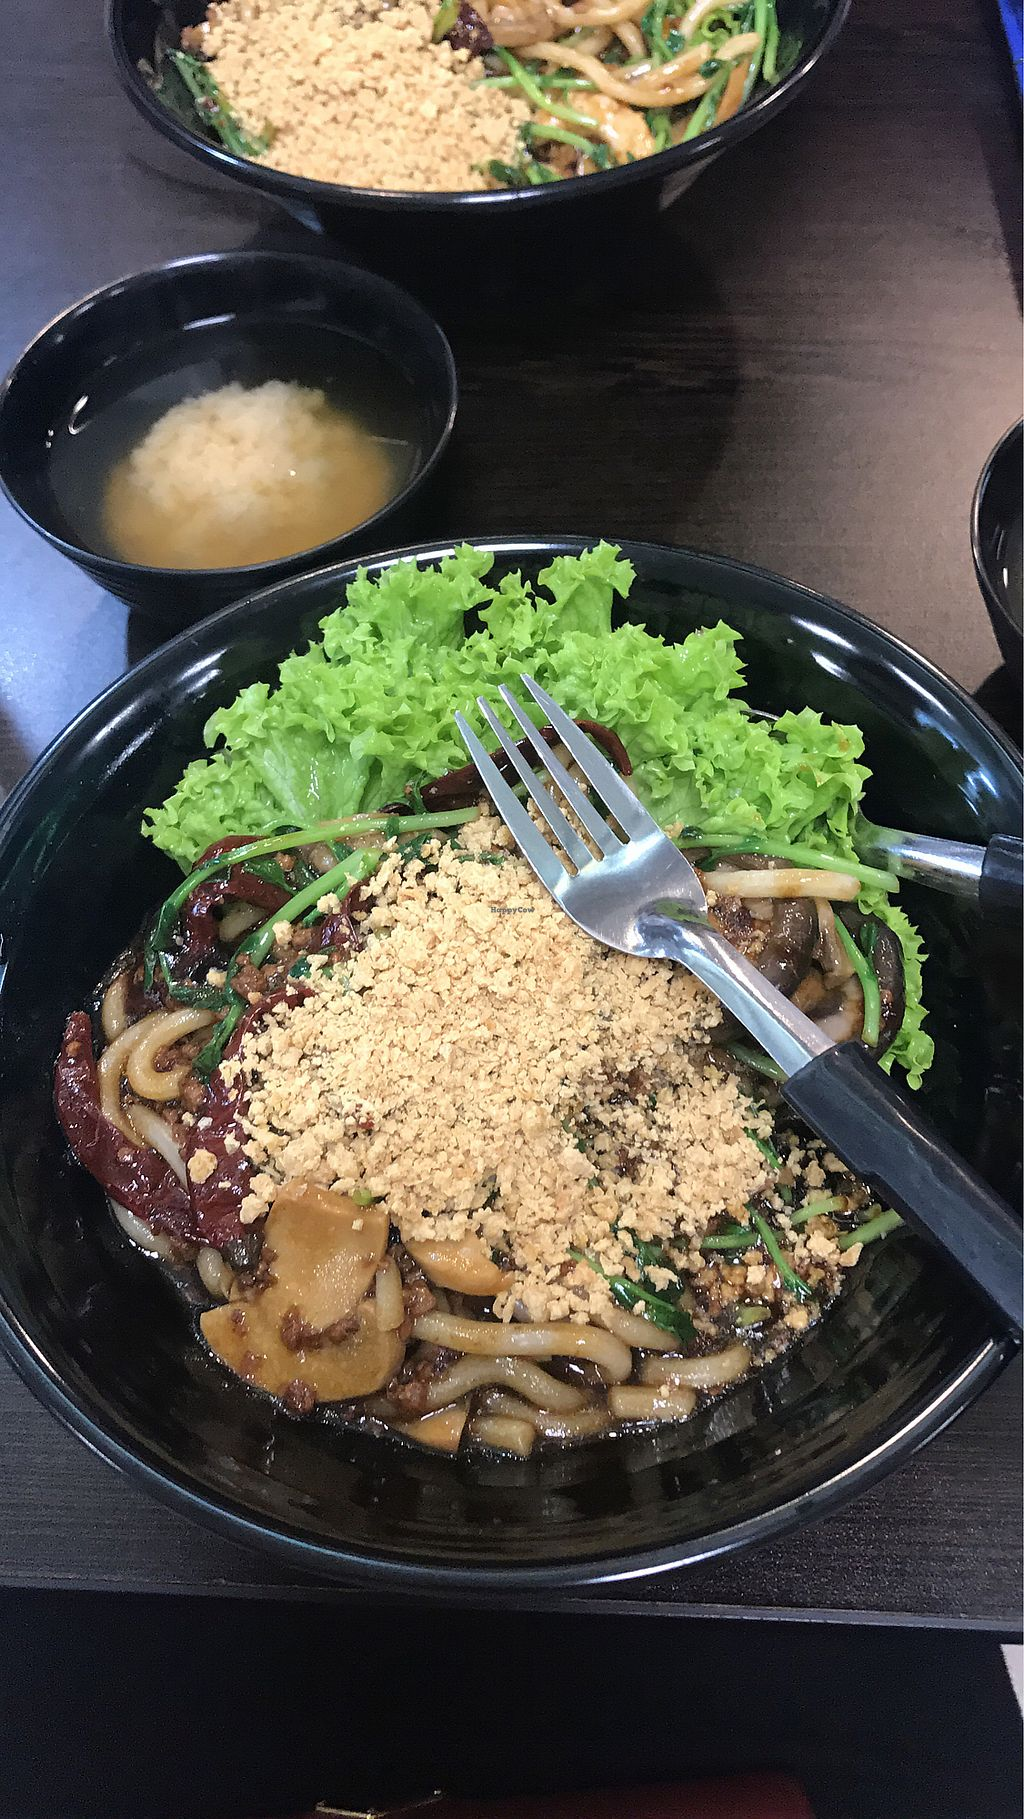 """Photo of CLOSED: Vegandeli  by <a href=""""/members/profile/NataliaYang"""">NataliaYang</a> <br/>yummy fried seafood udon! *thumb up* <br/> August 23, 2017  - <a href='/contact/abuse/image/80167/296162'>Report</a>"""